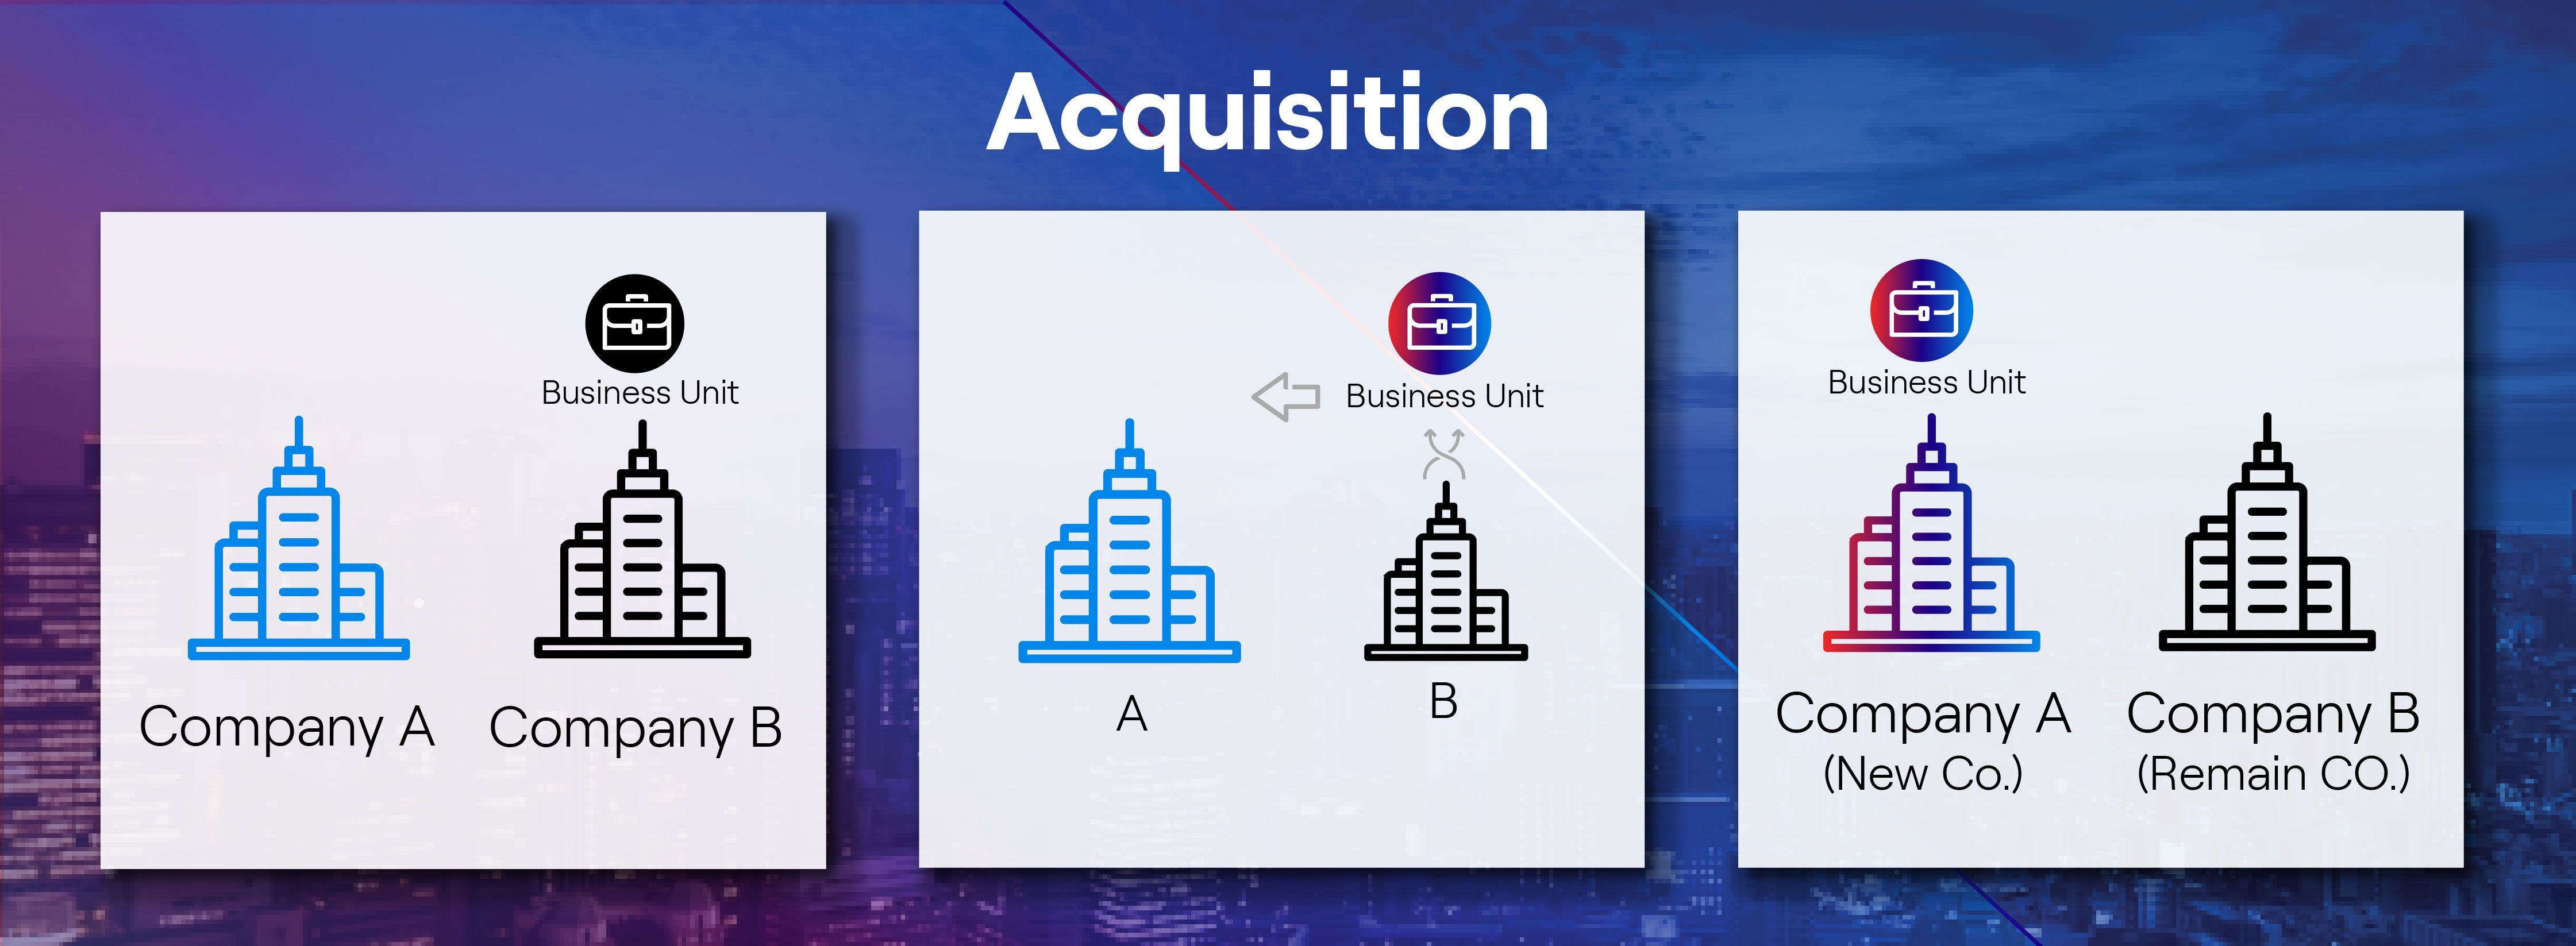 Diagram of an acquisition.